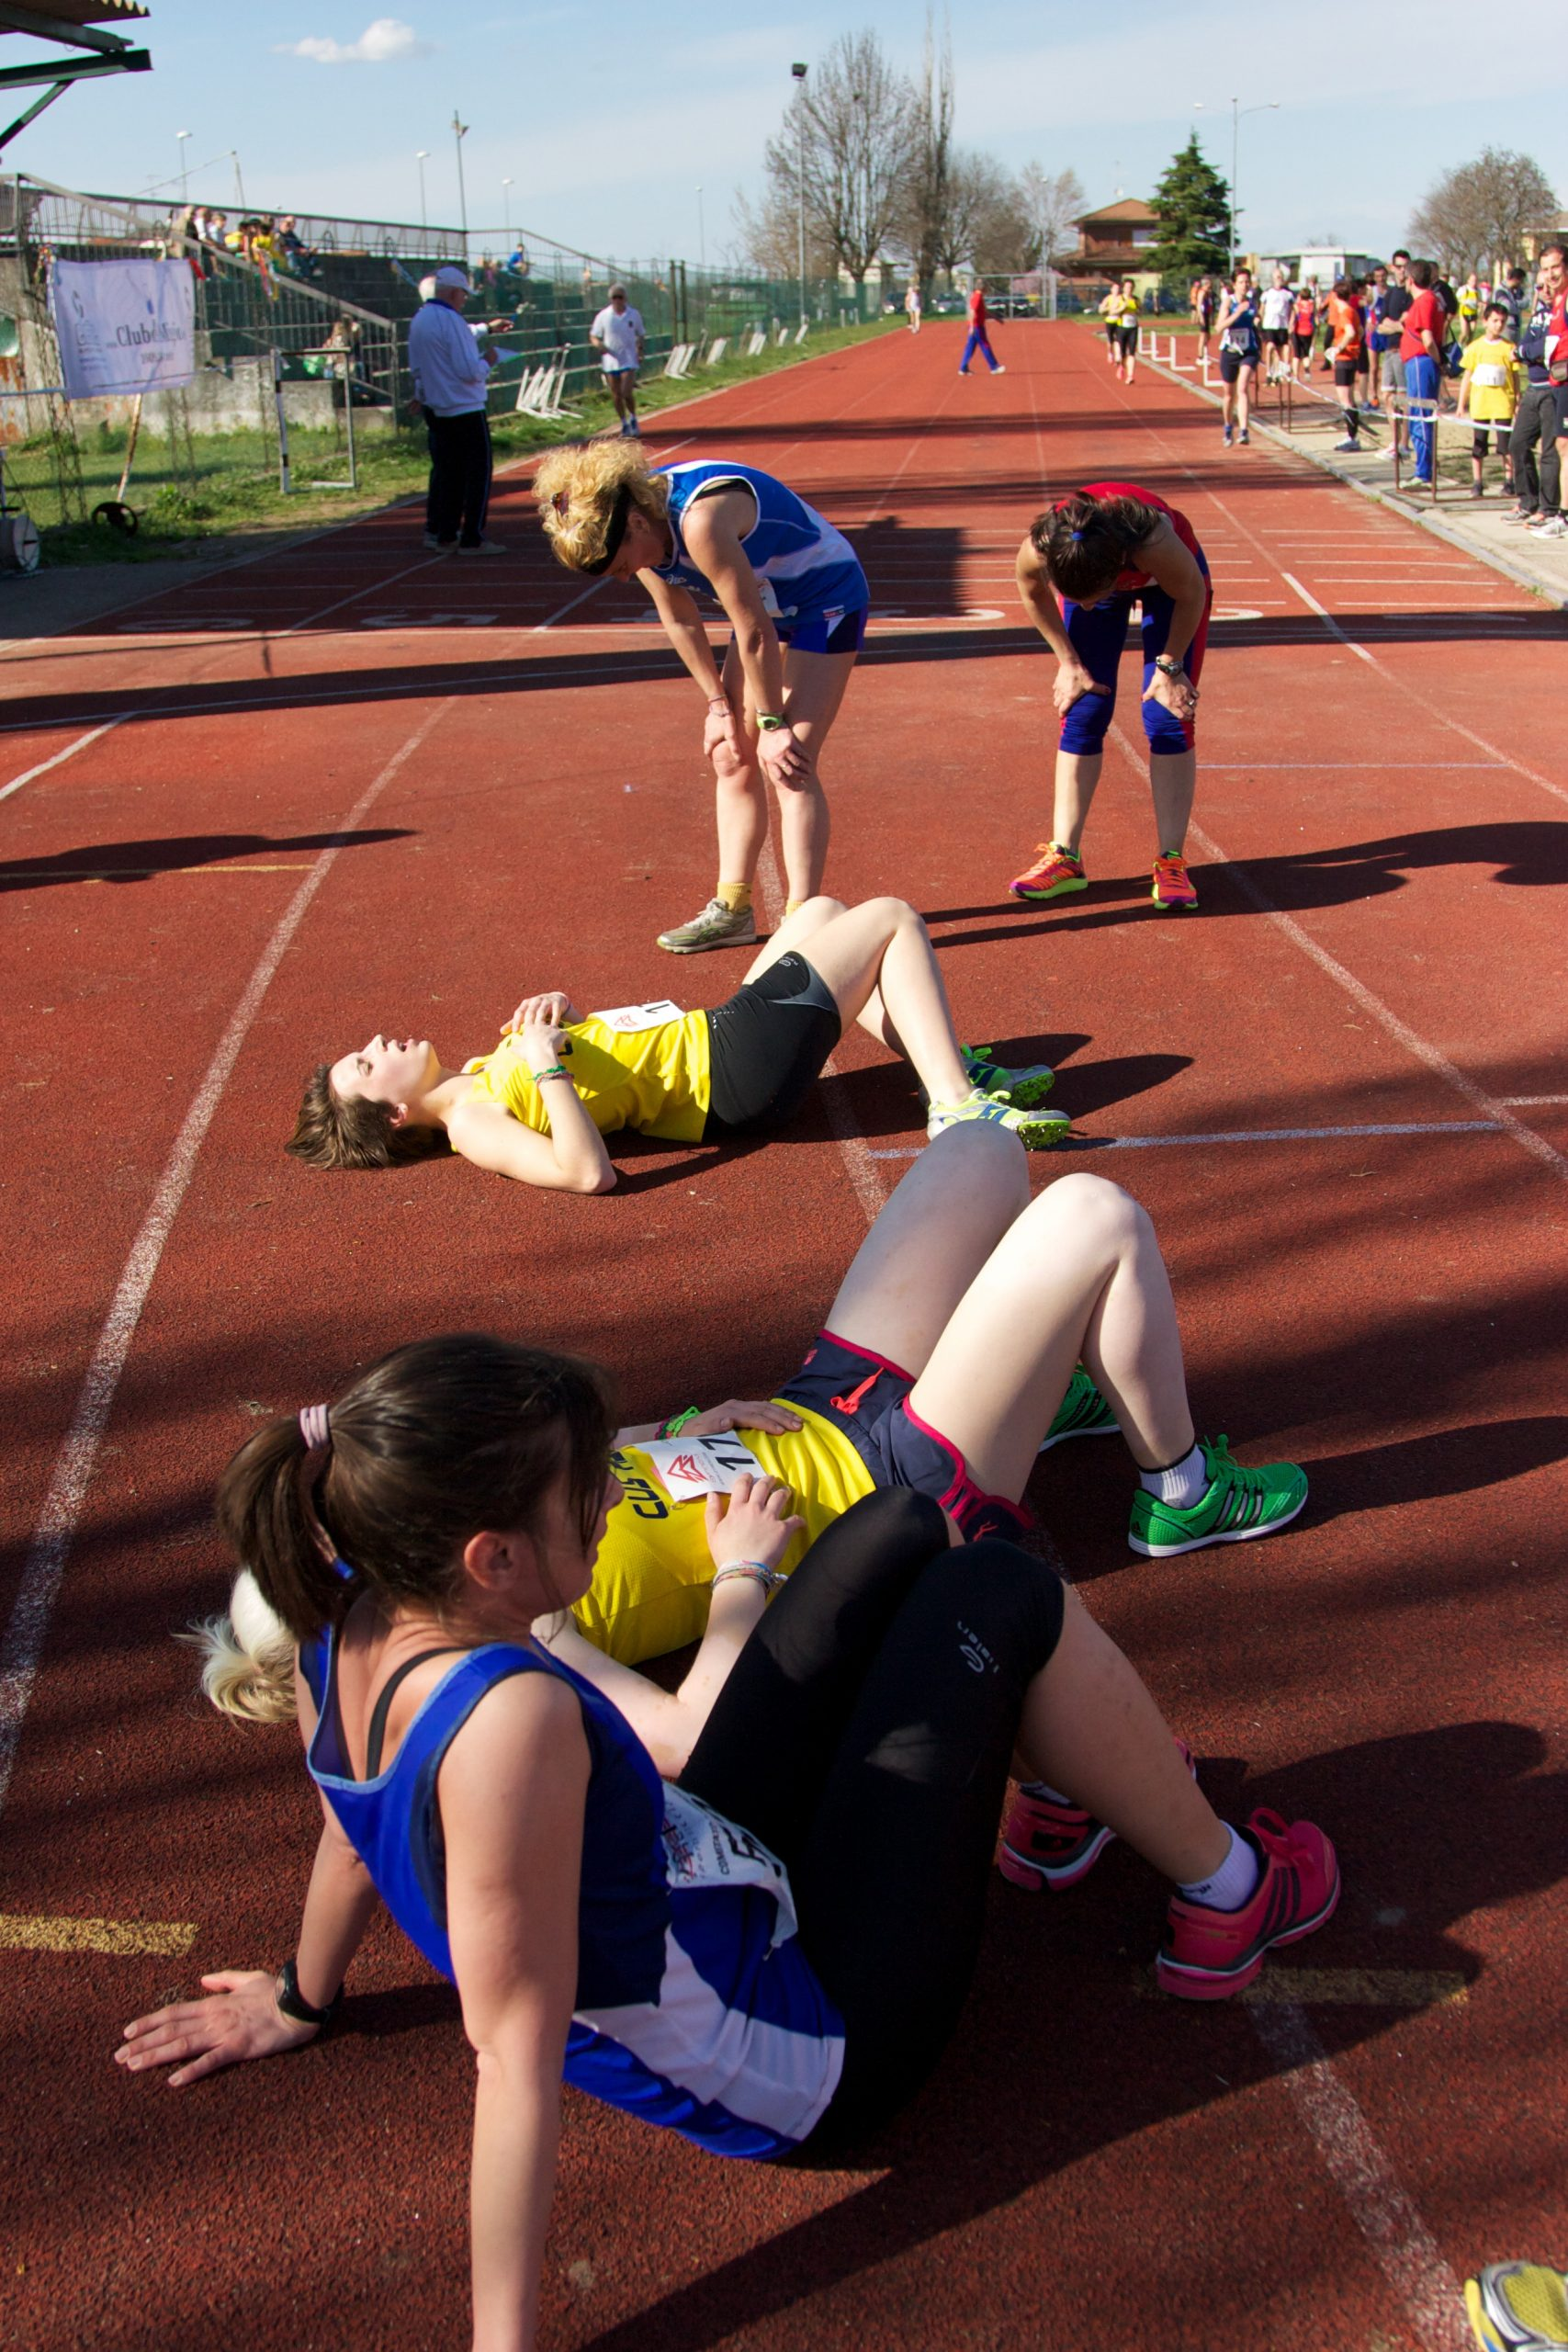 Image shows female track and field runners resting after a race. Three women are resting on the ground and two are leaning over with their hands on their knees, catching their breathe.